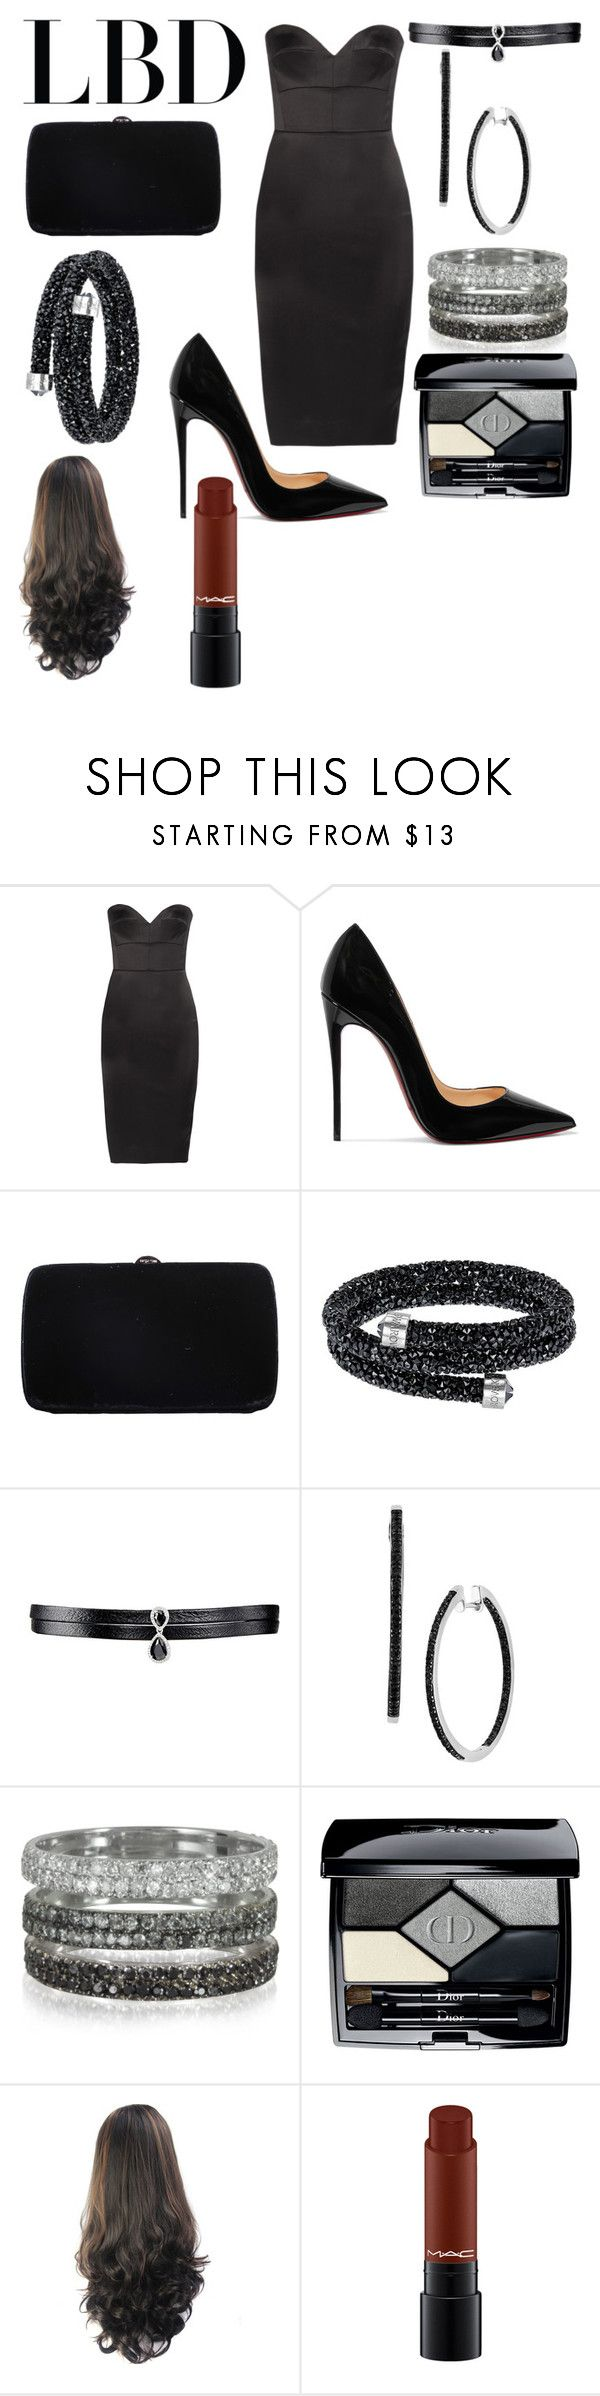 """little black dress"" by shayshayv ❤ liked on Polyvore featuring Victoria Beckham, Christian Louboutin, Sergio Rossi, Swarovski, Fallon, Bernard Delettrez and Christian Dior"